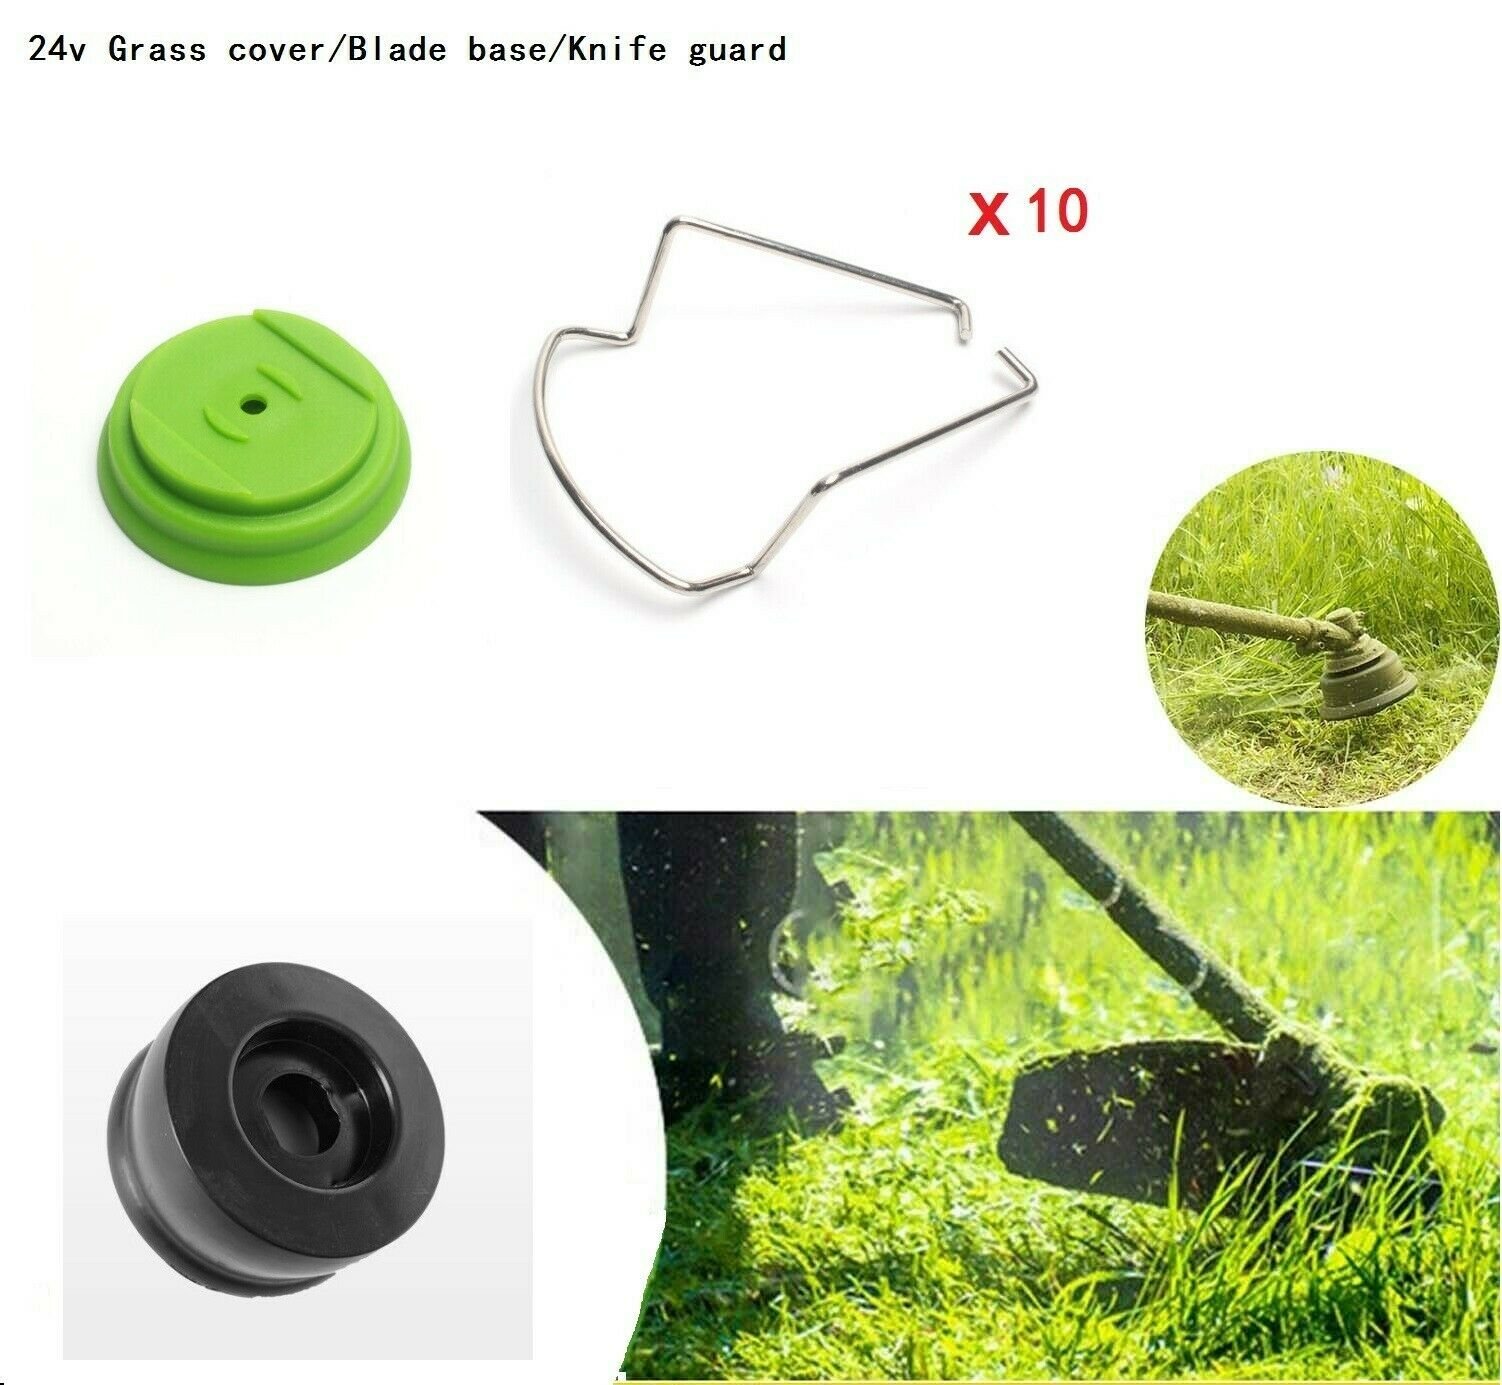 10*Knife Guard 1*24v Grass Cover 1*Blade Base Charging Durable Garden Tool New